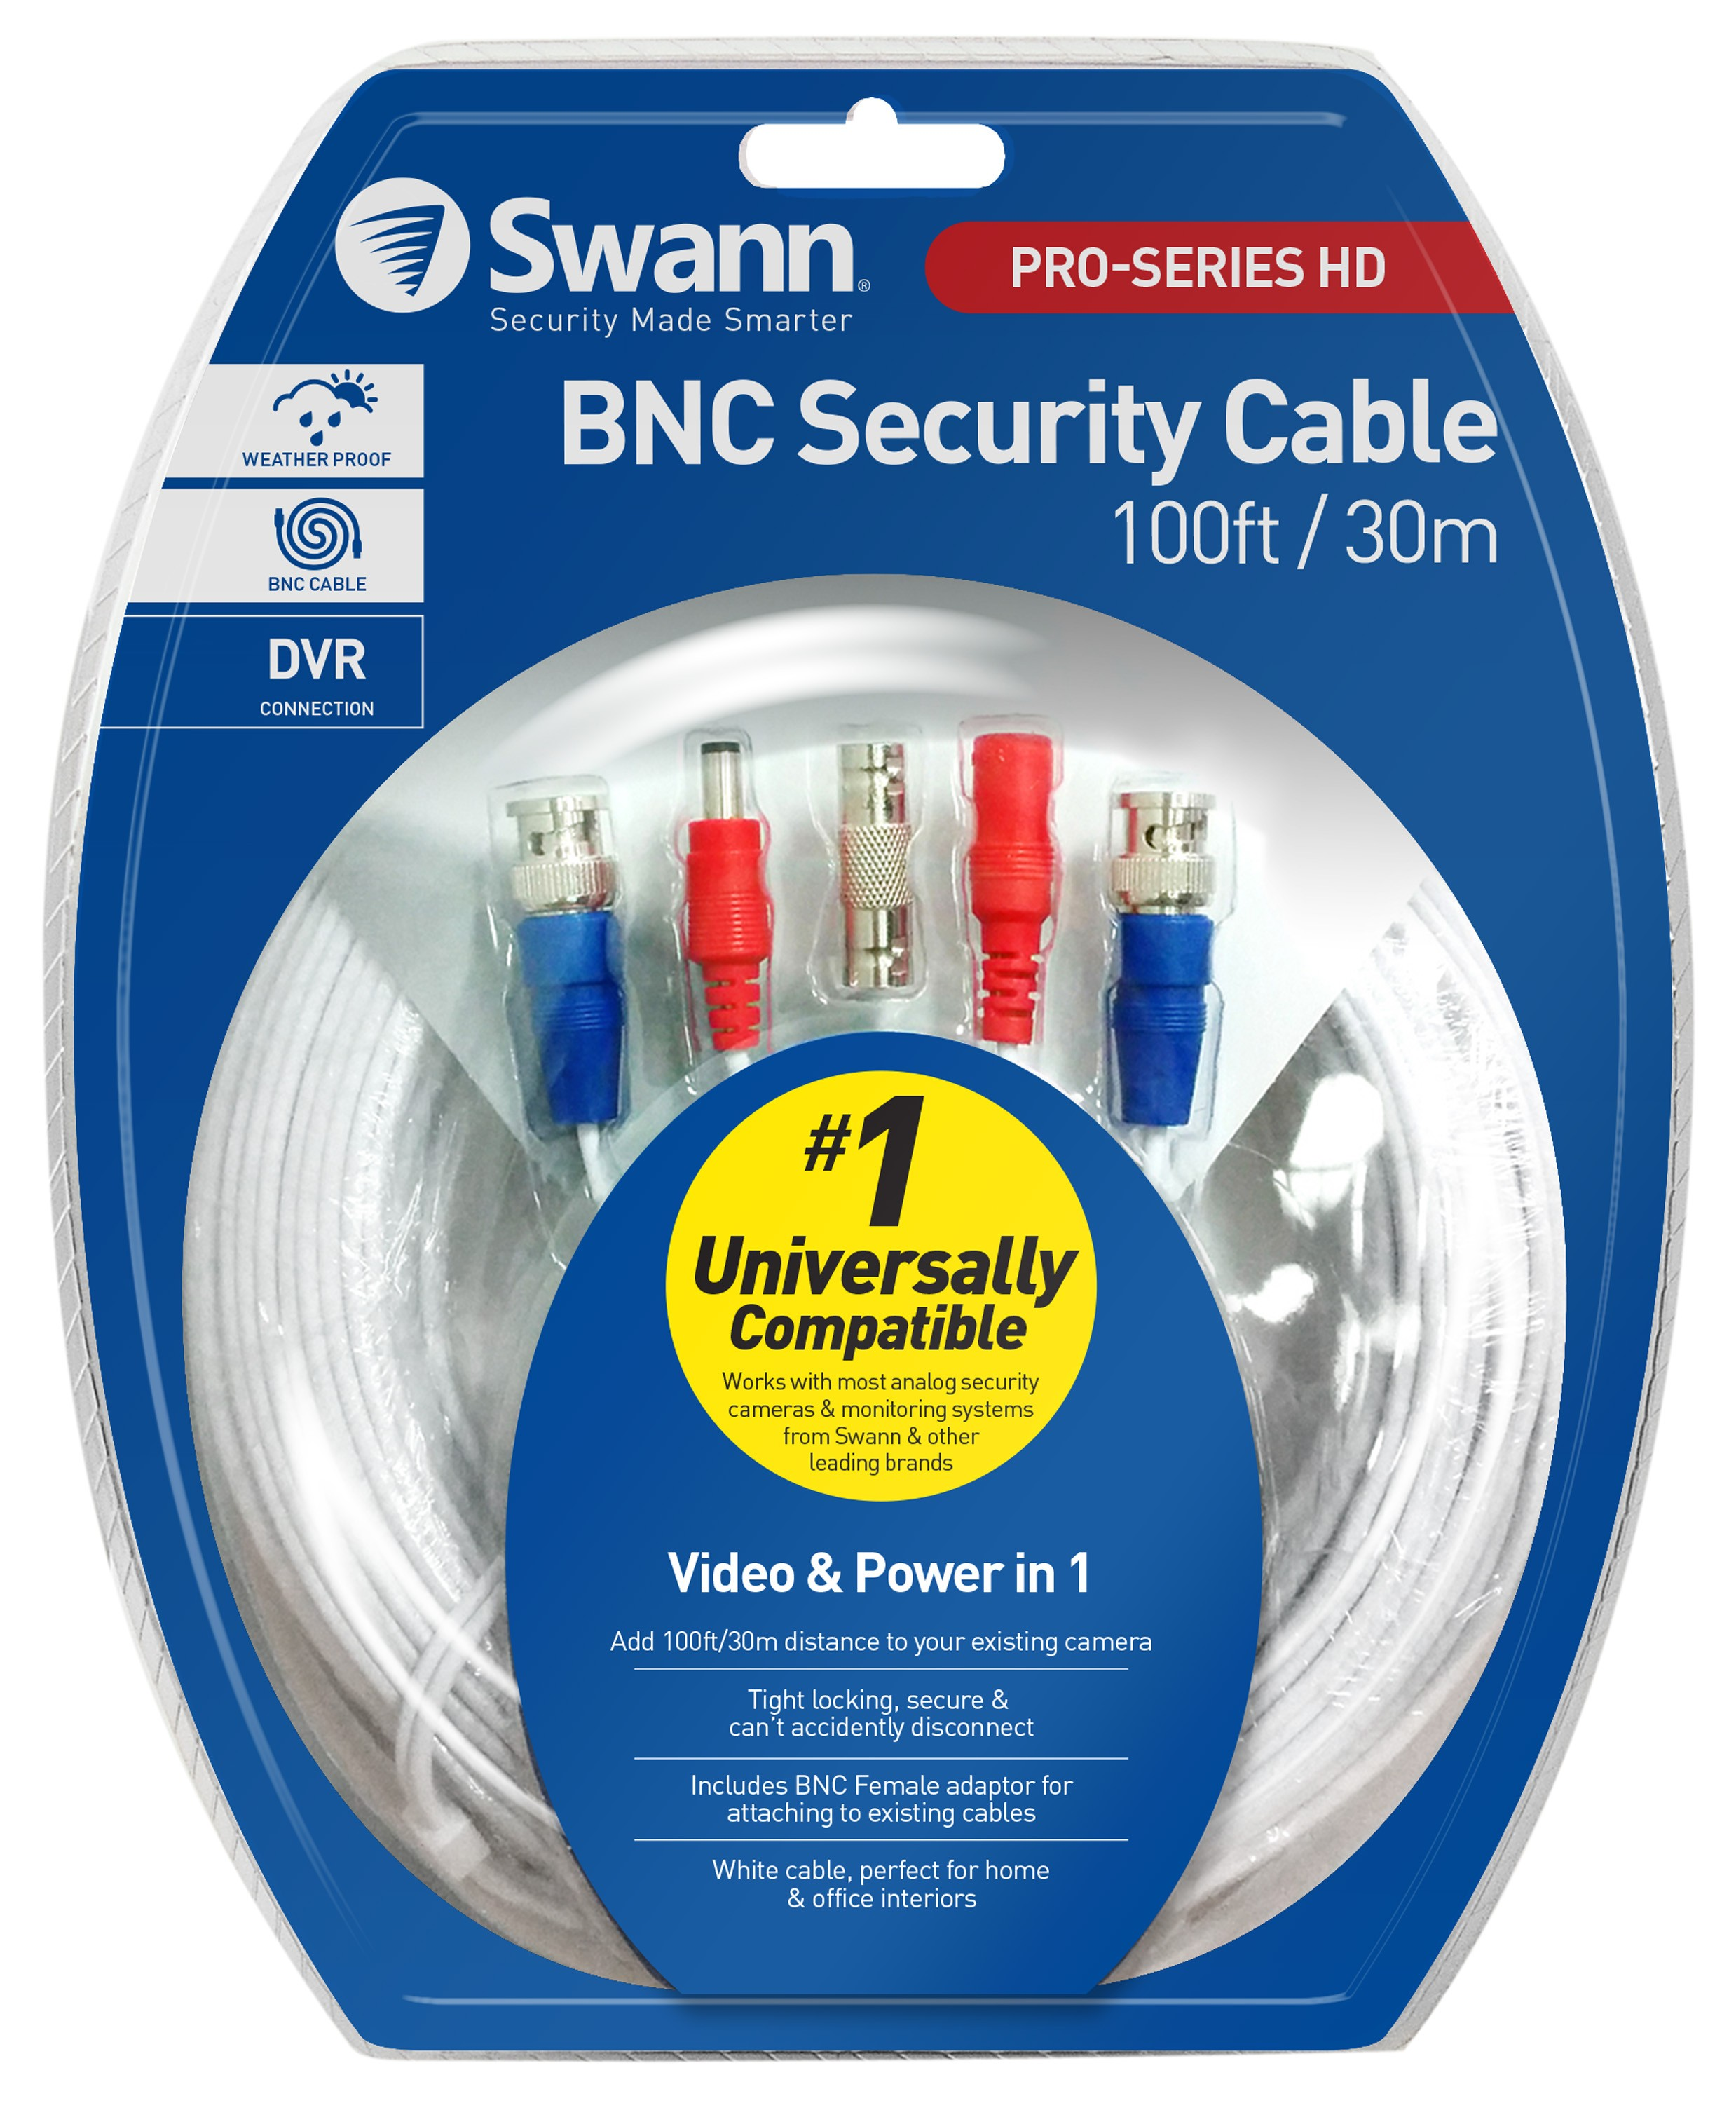 HD Video & Power 100ft / 30m BNC Cable on